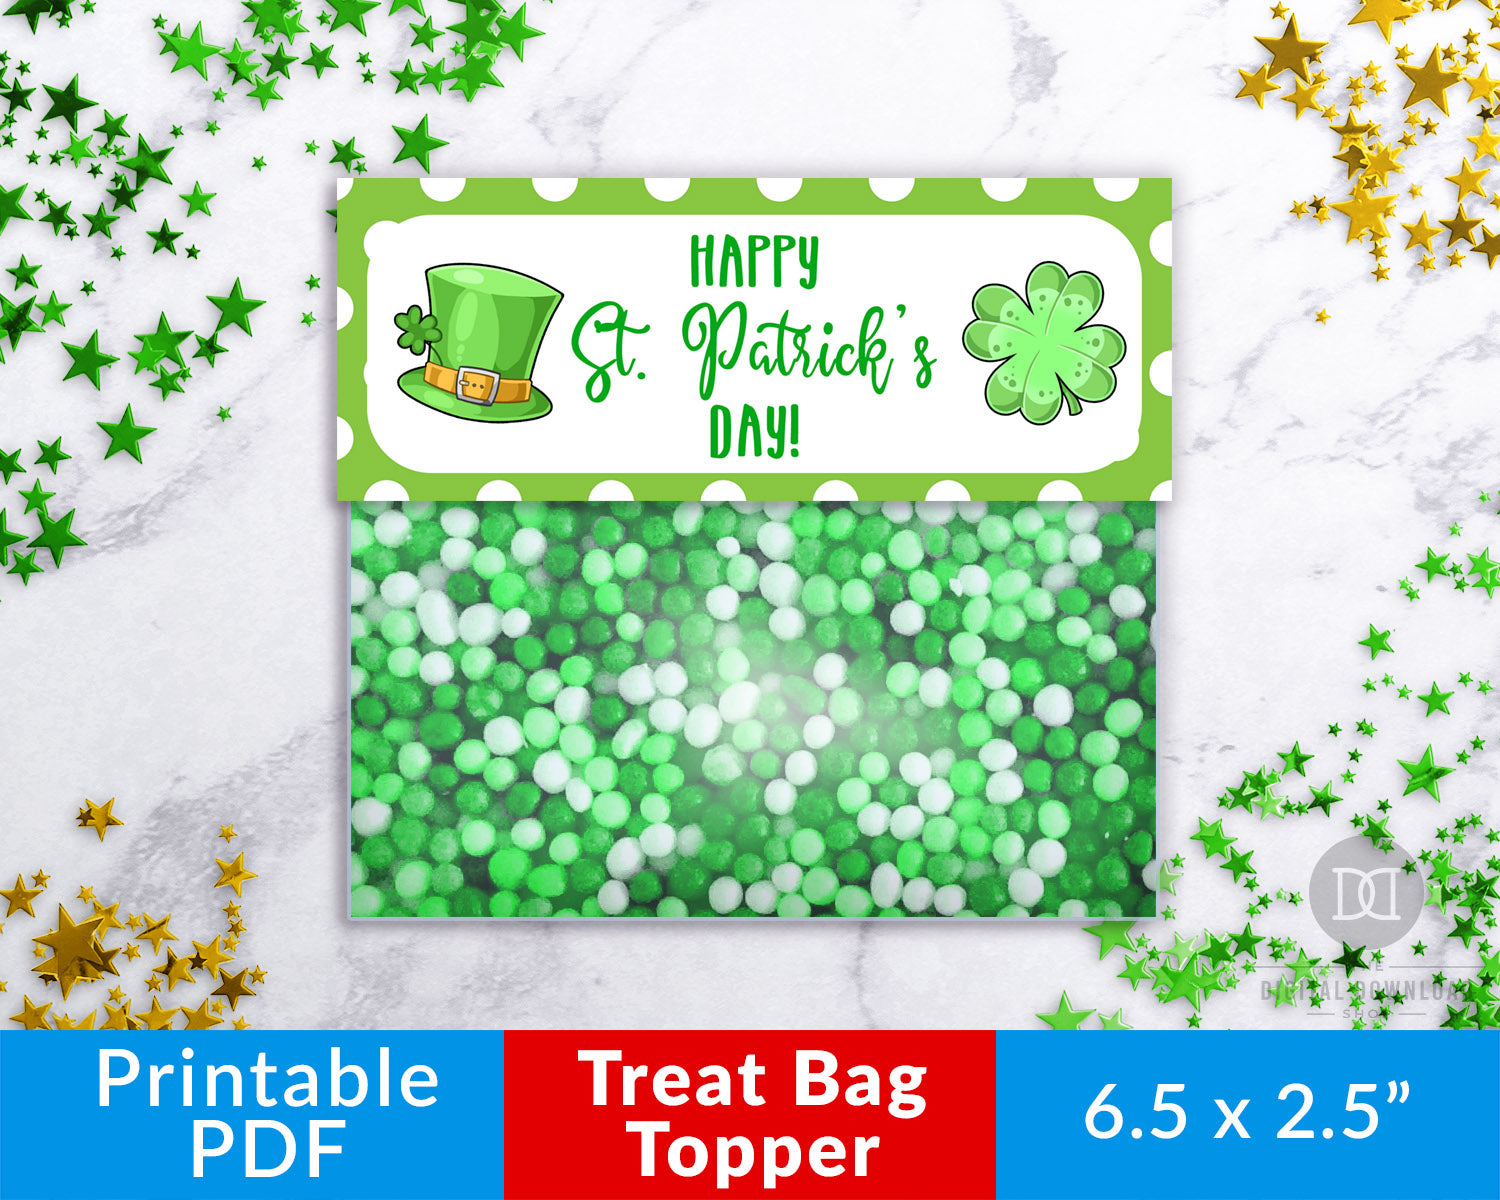 St. Patrick's Day Treat Bag Topper Printable- These fun printable DIY bag toppers are the perfect finishing touch to your Saint Patrick's Day party treat bags! | St. Patty's Day party ideas, Saint Patrick's Day party favors, #StPatricksDay #treatBagTopper #DigitalDownloadShop